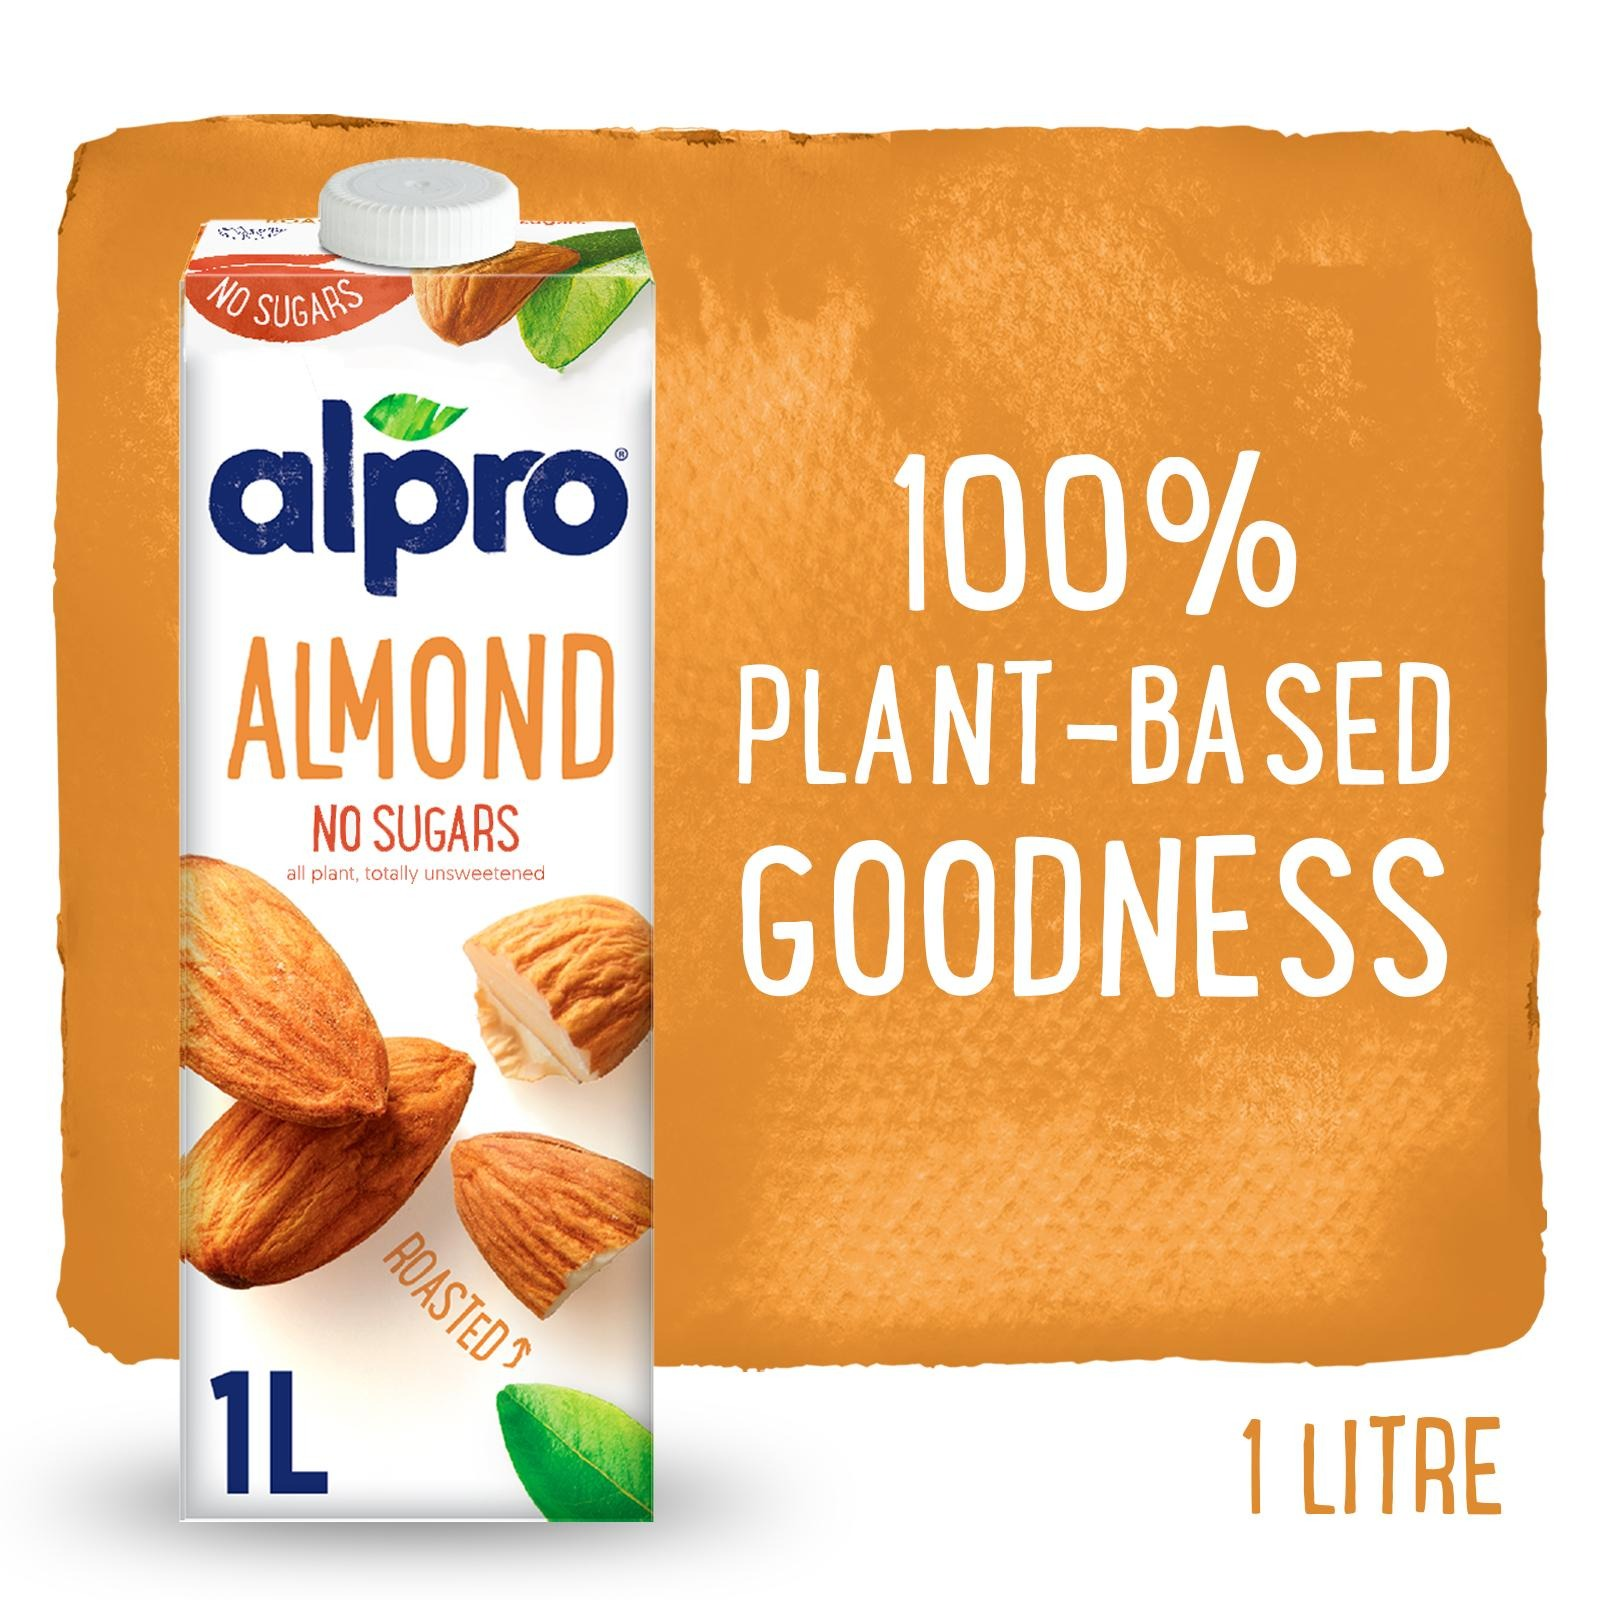 Alpro Almond Roasted - Unsweetened - By Sonnamera